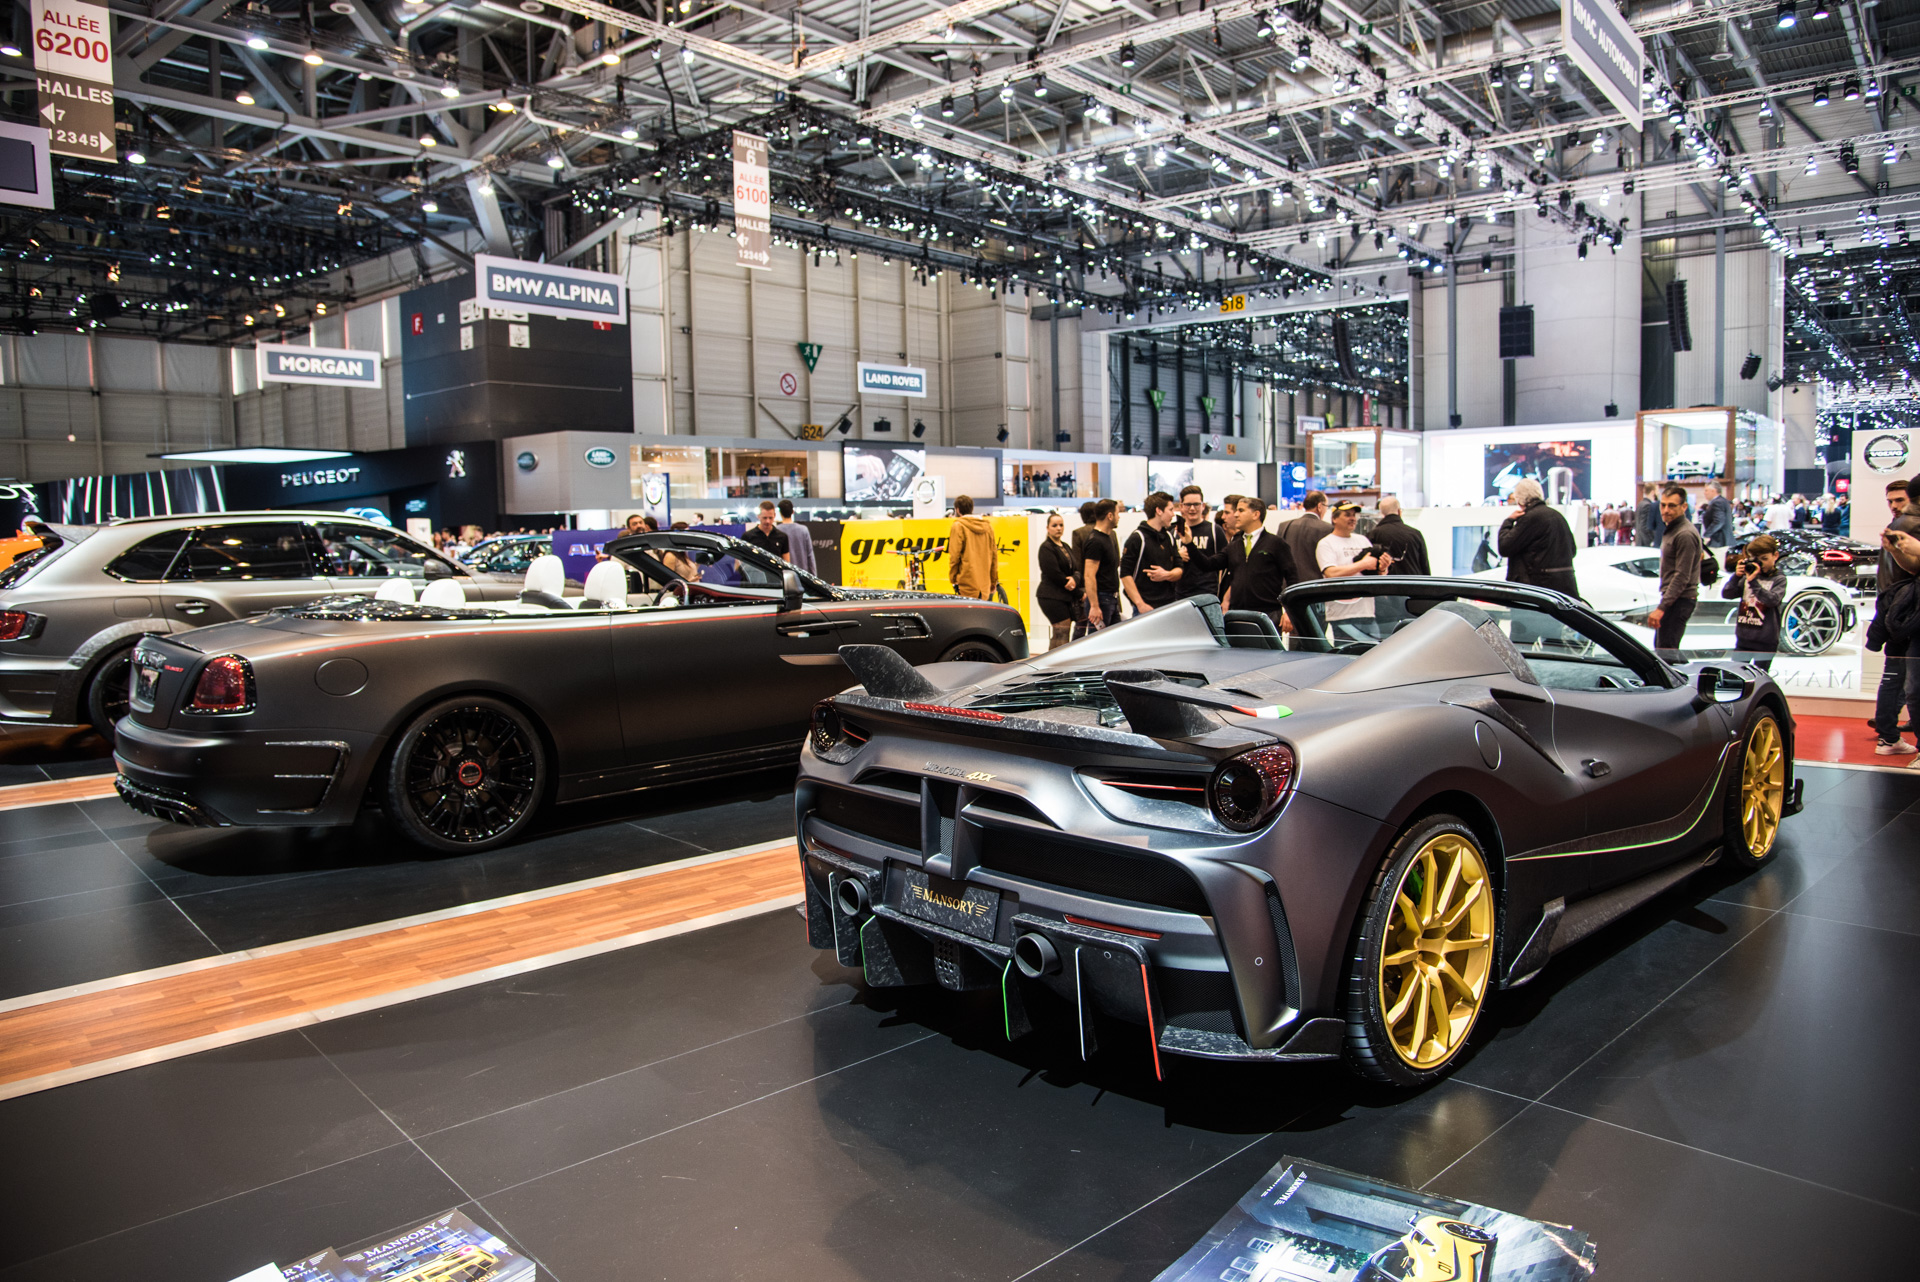 geneva-international-motor-show-igor-sinitsin-46